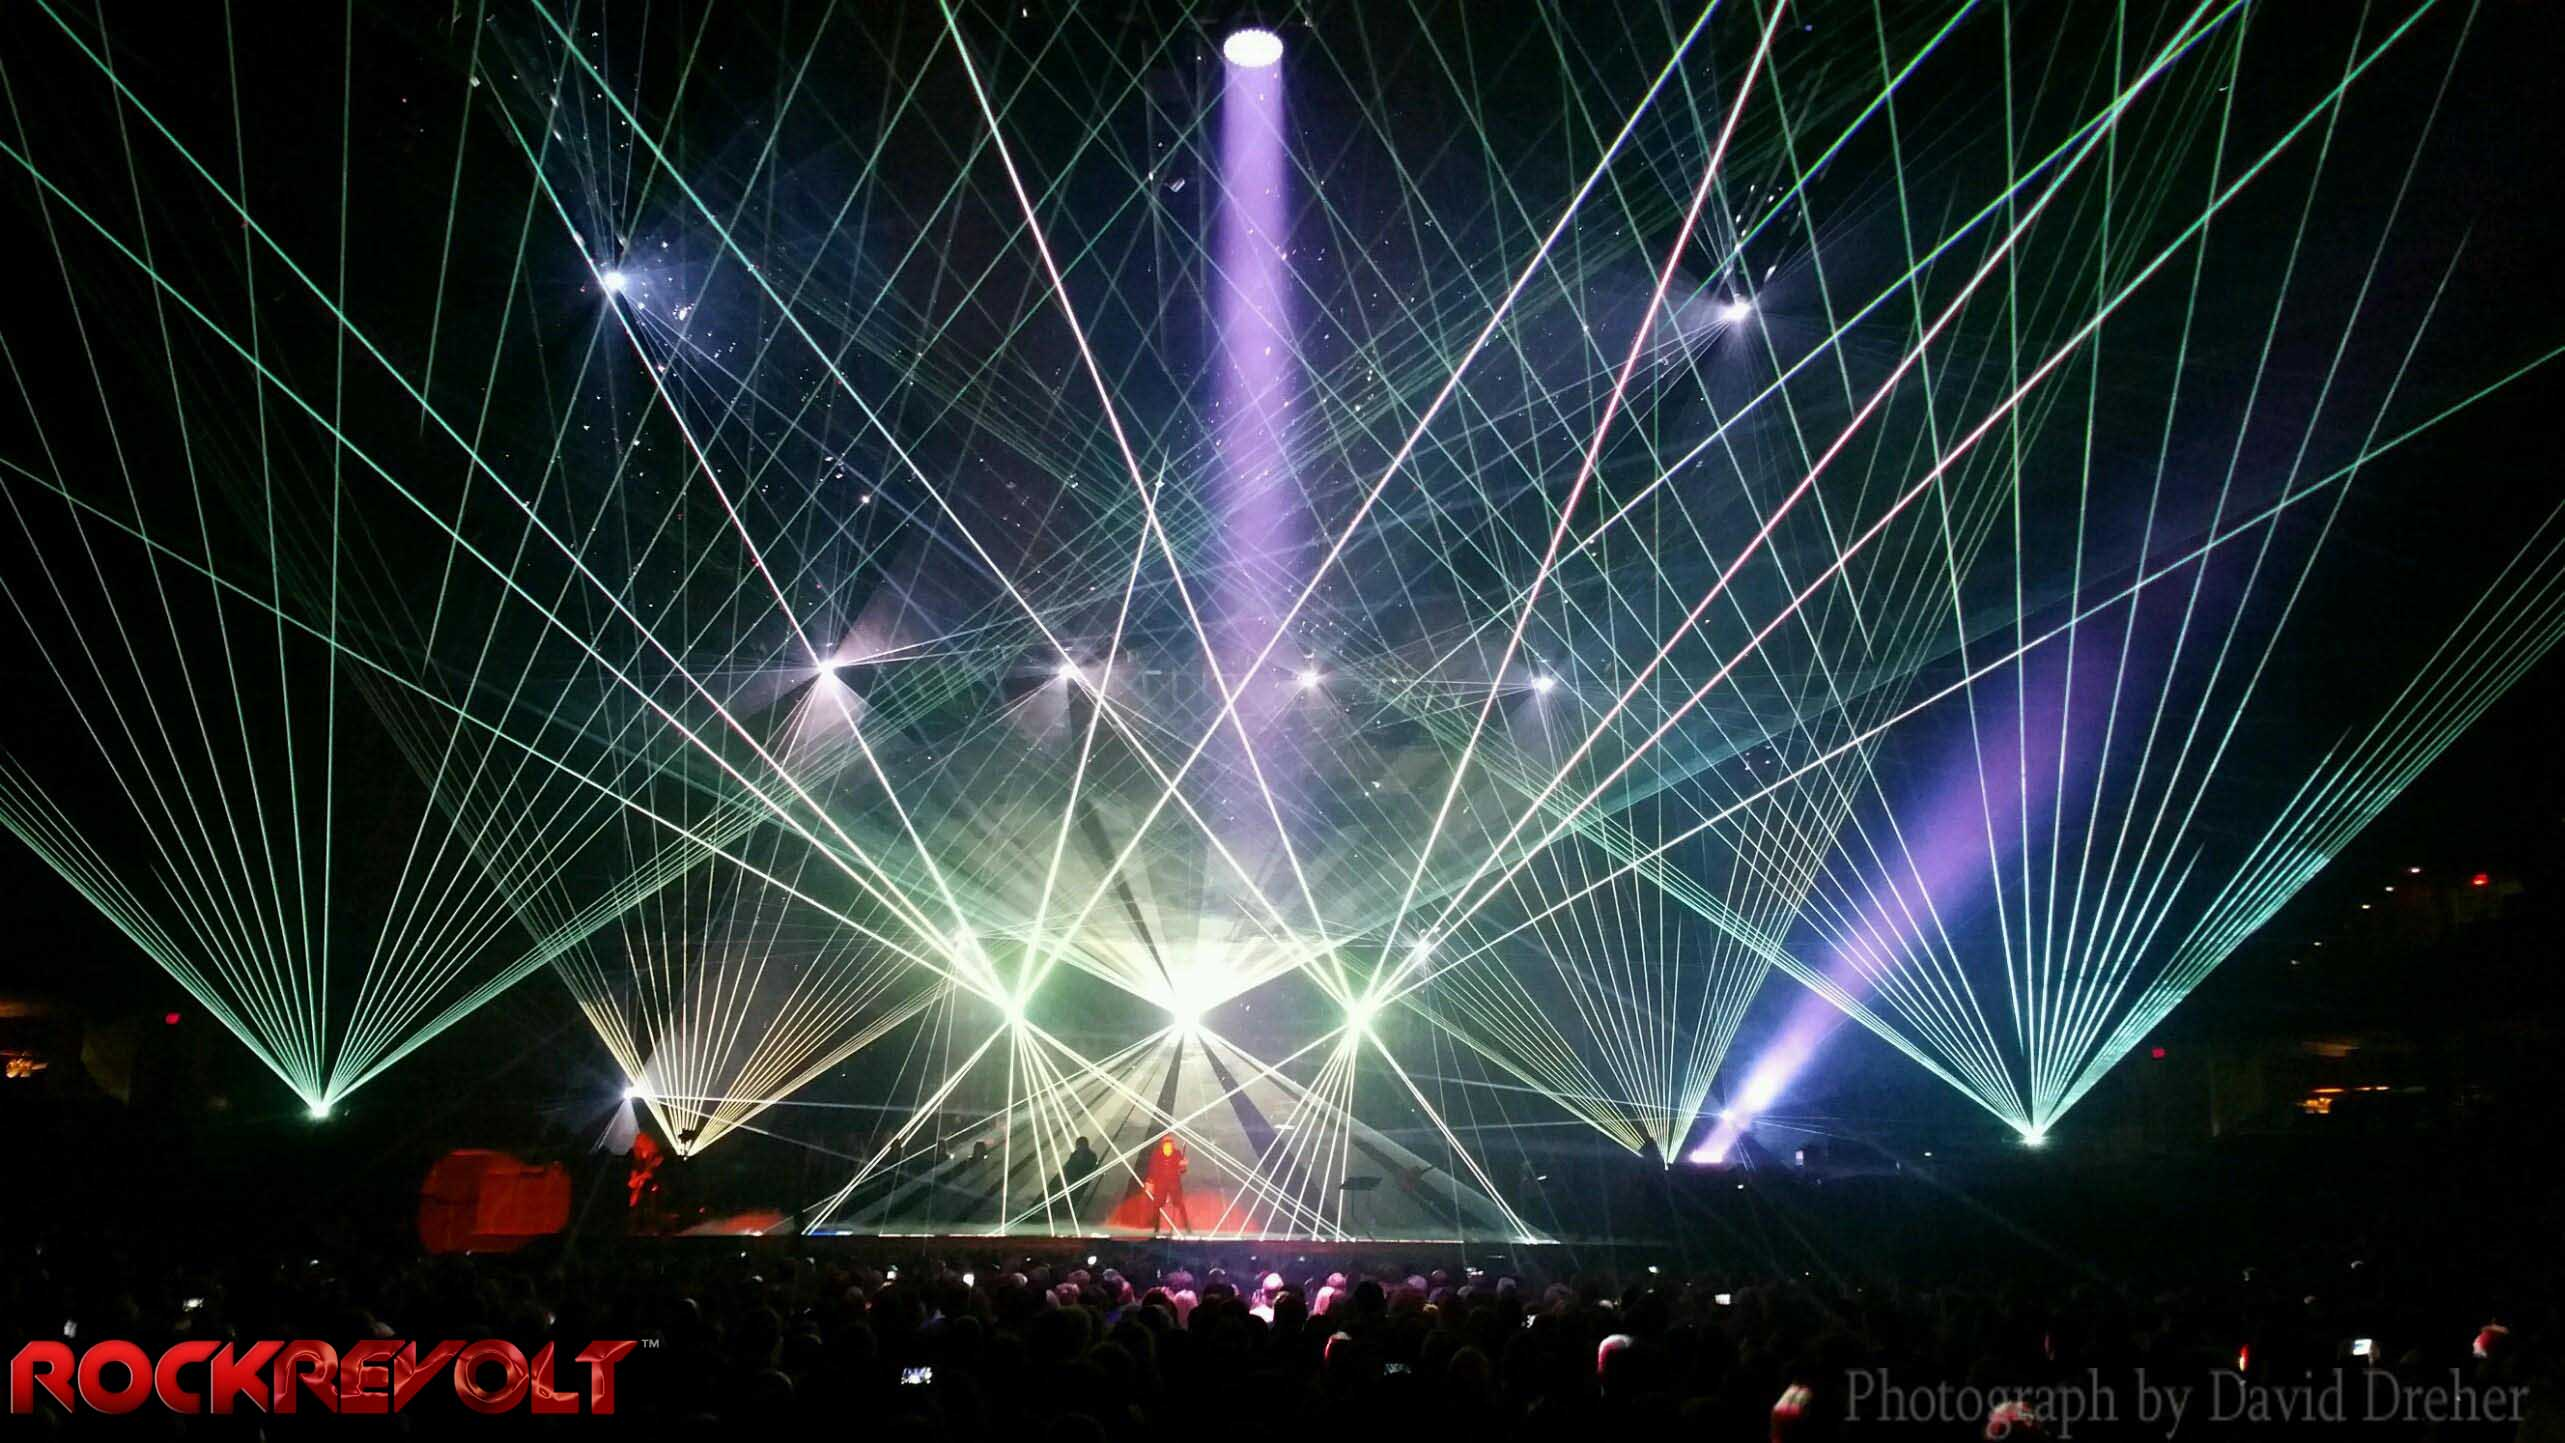 Trans-Siberian Orchestra – The Ghosts of Christmas Eve | fox8.com